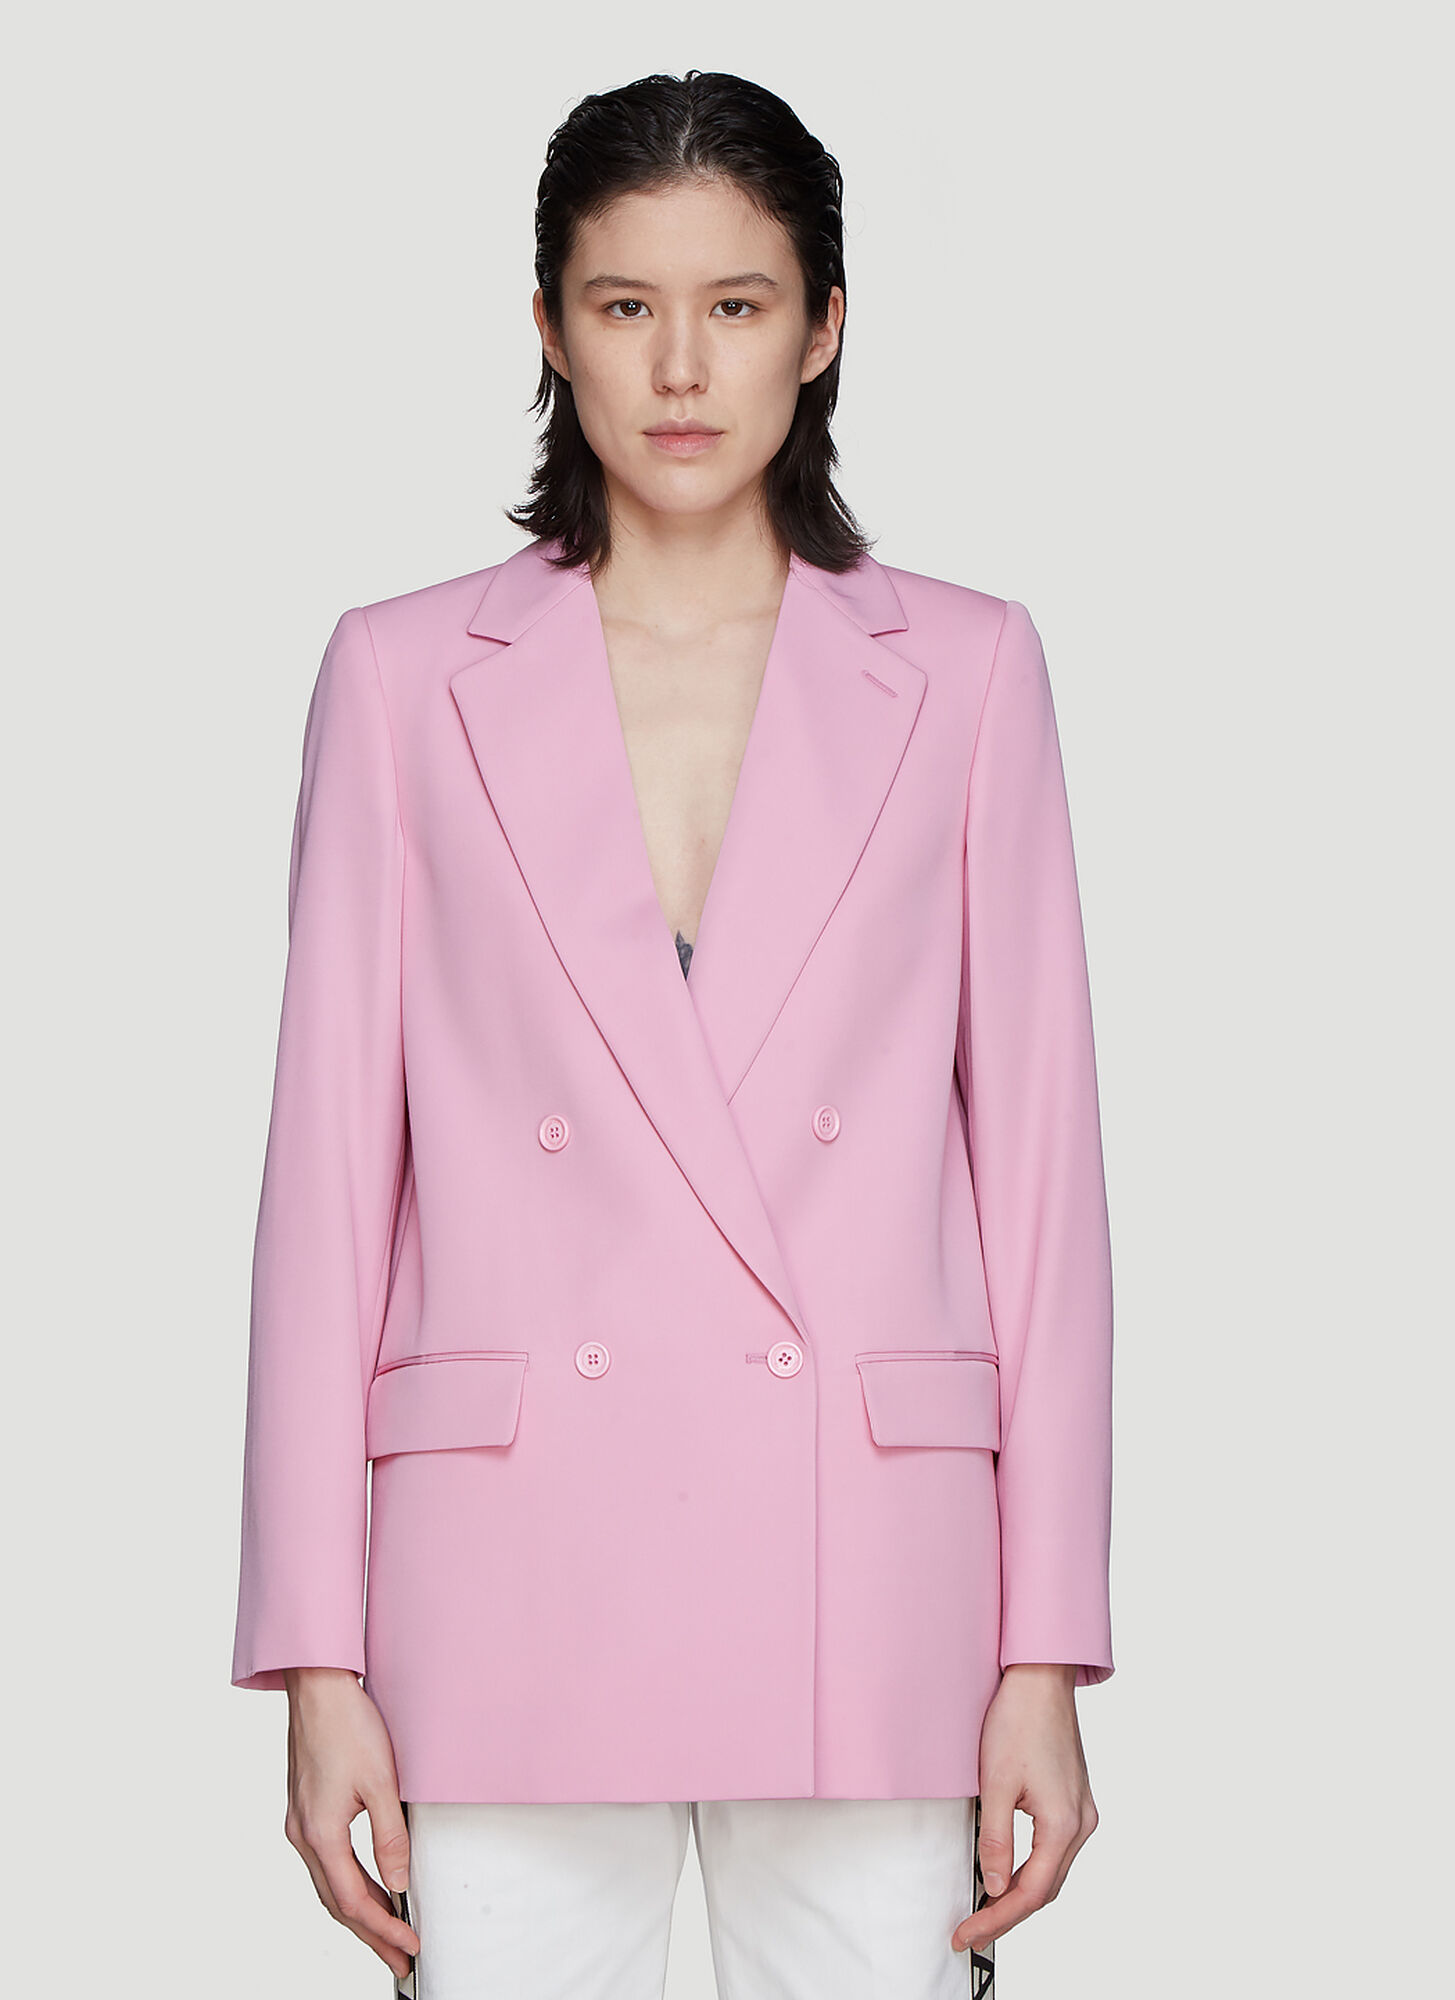 Photo of Stella McCartney Double Breasted Jacket in Pink - Stella McCartney Blazers